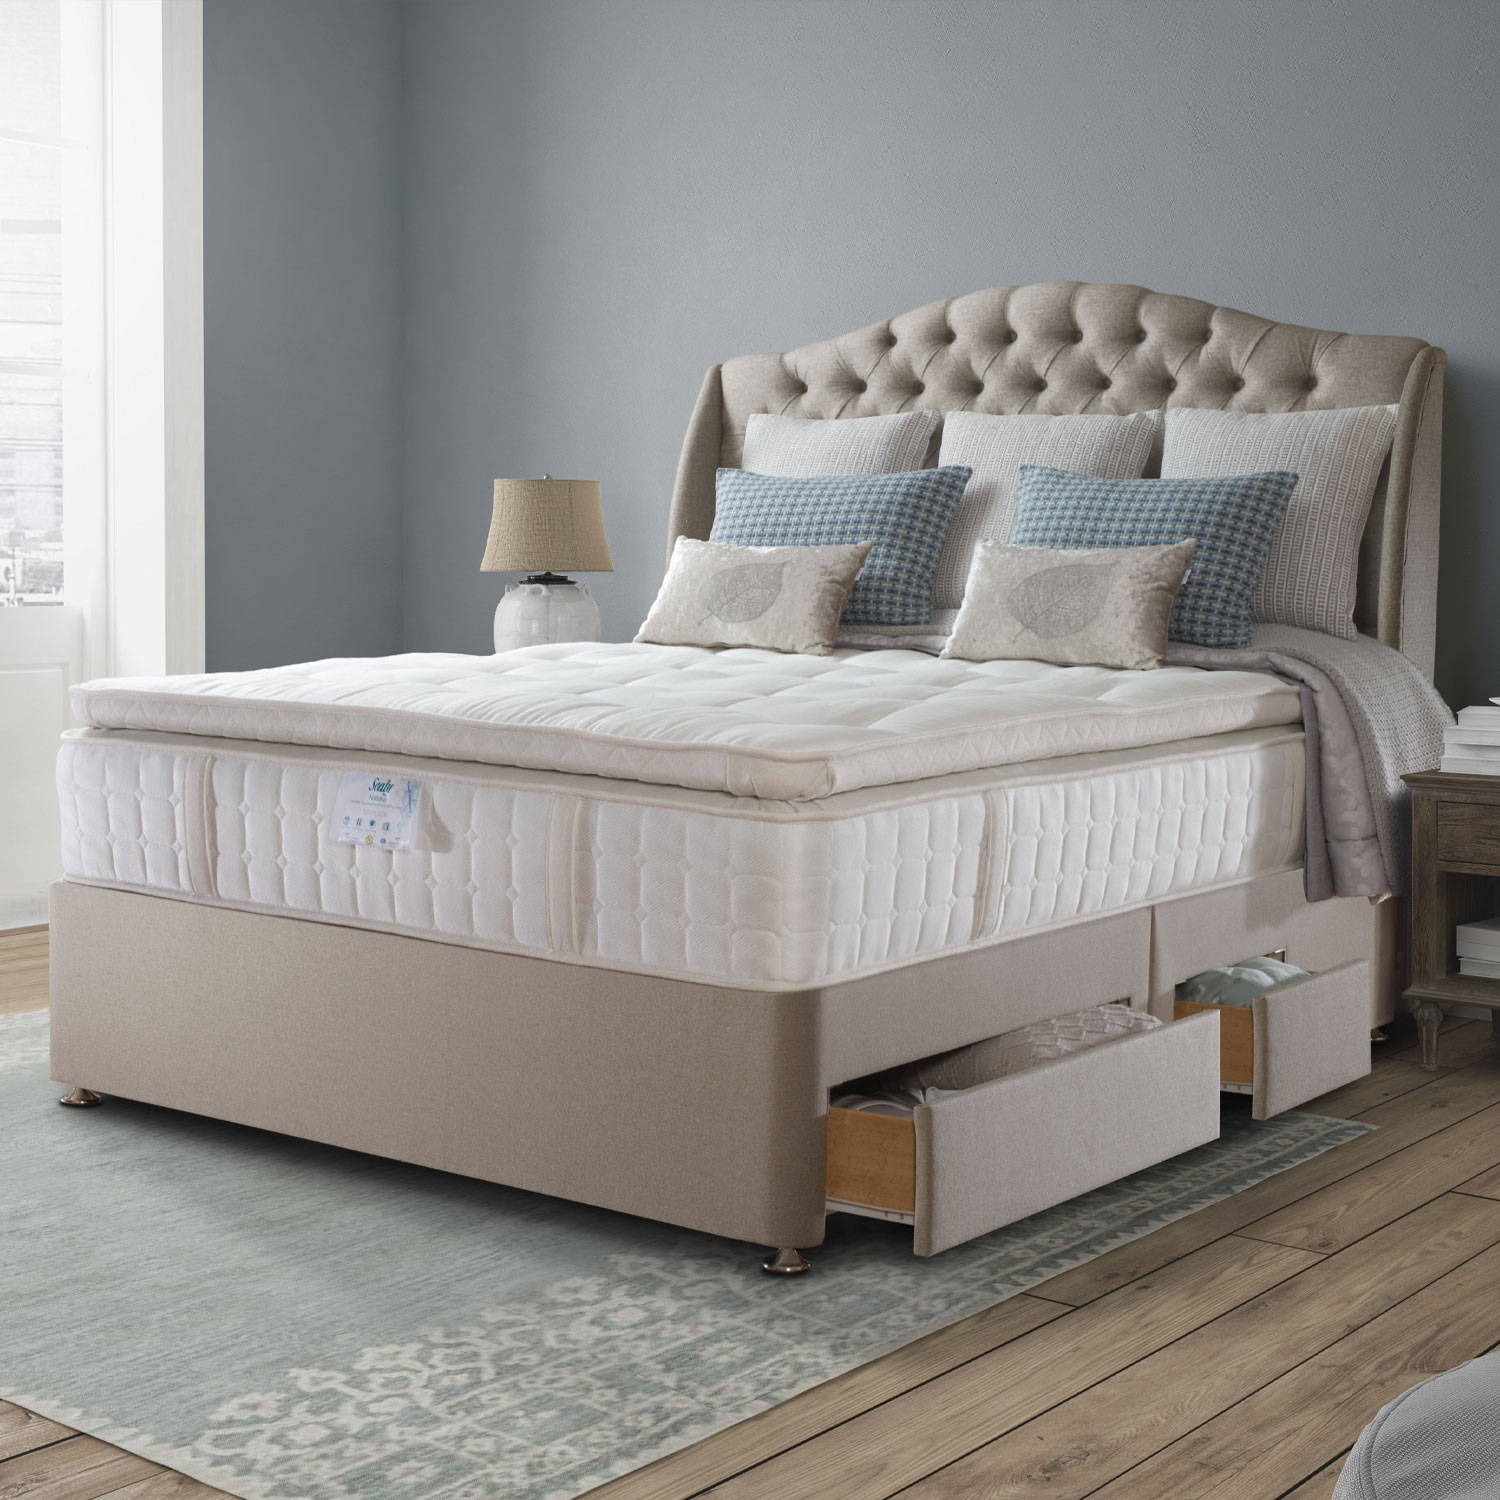 Sealy beds At Better Furniture Norwich